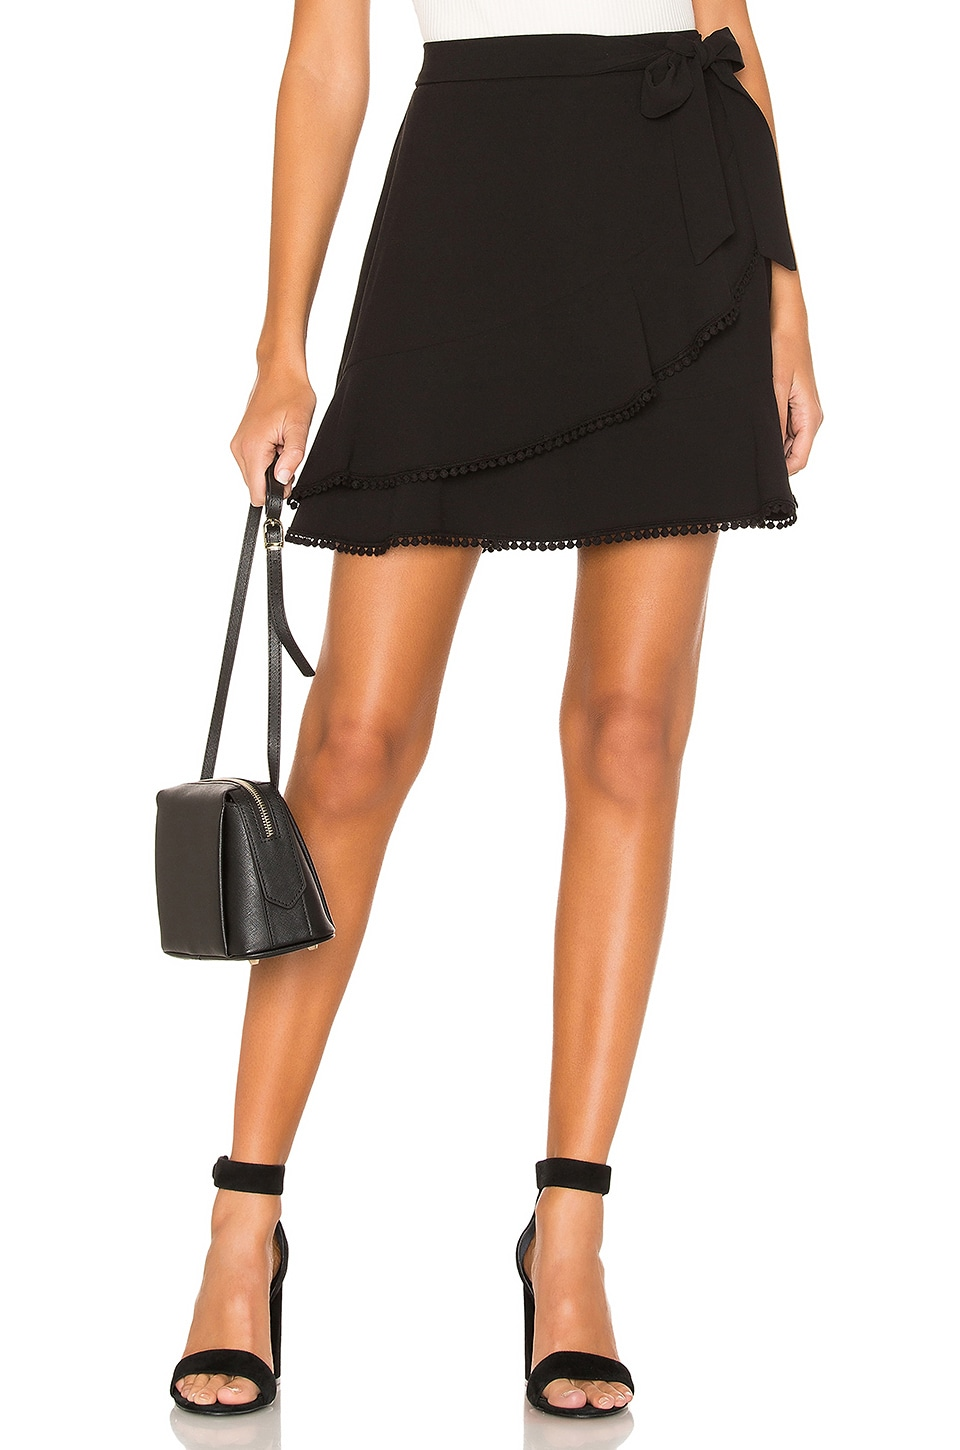 cupcakes and cashmere Zetta Skirt in Black